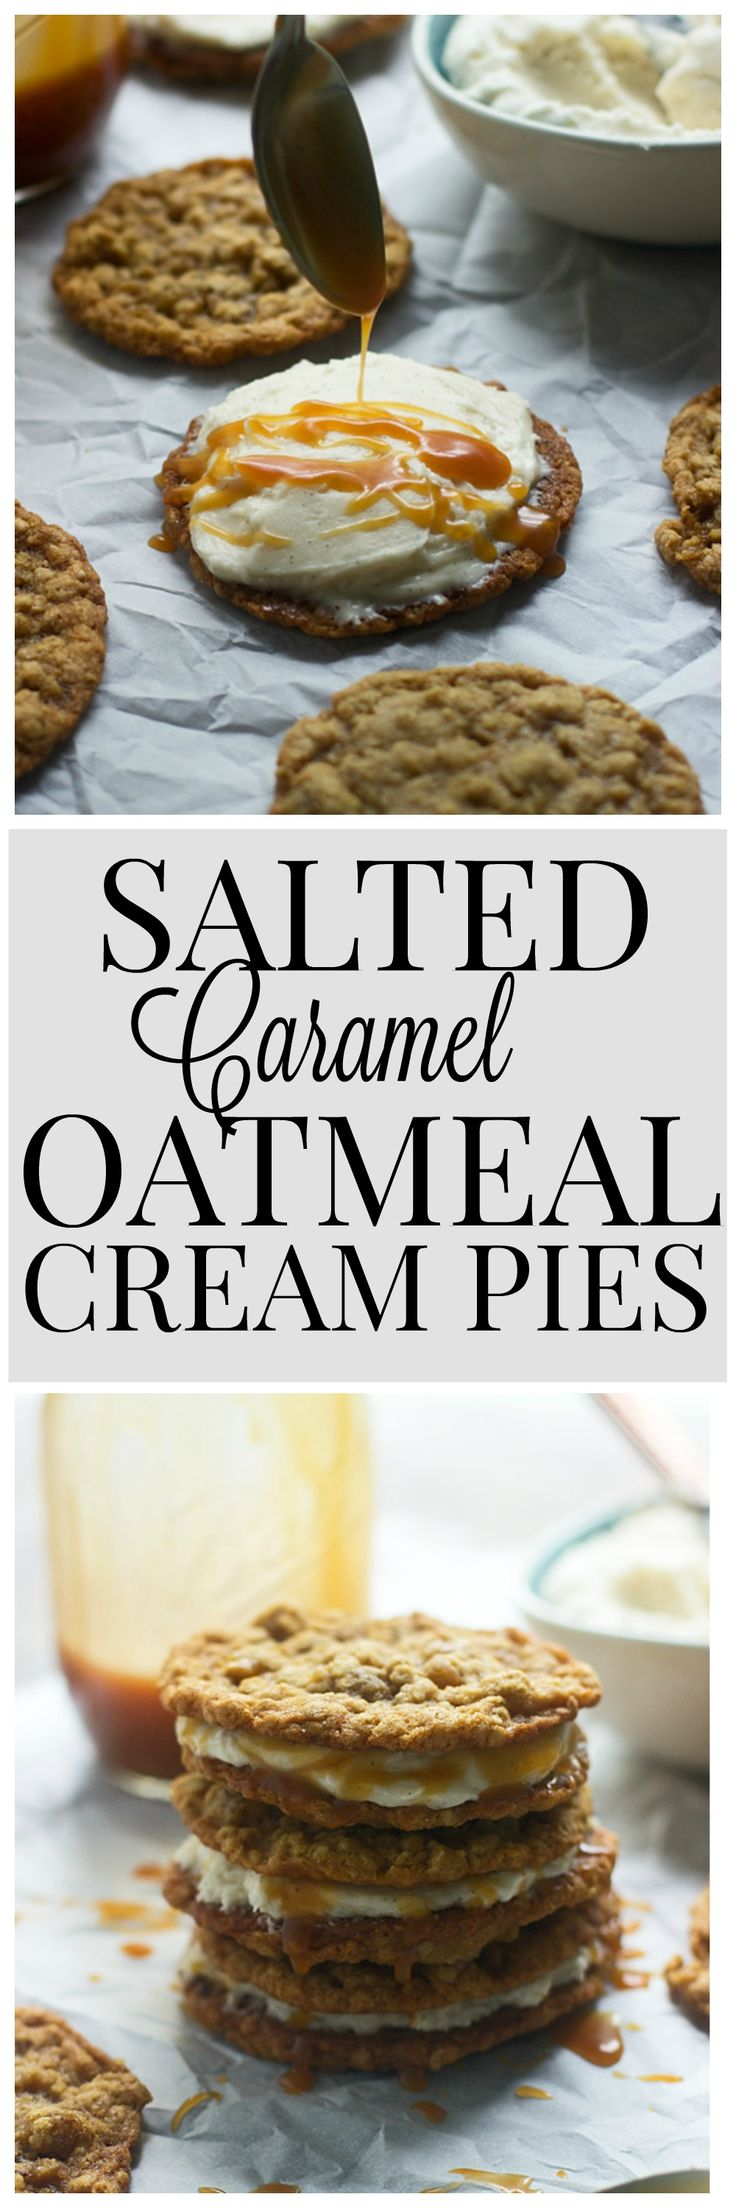 Homemade Salted Caramel Oatmeal Cream Pies - INSANELY delicious.